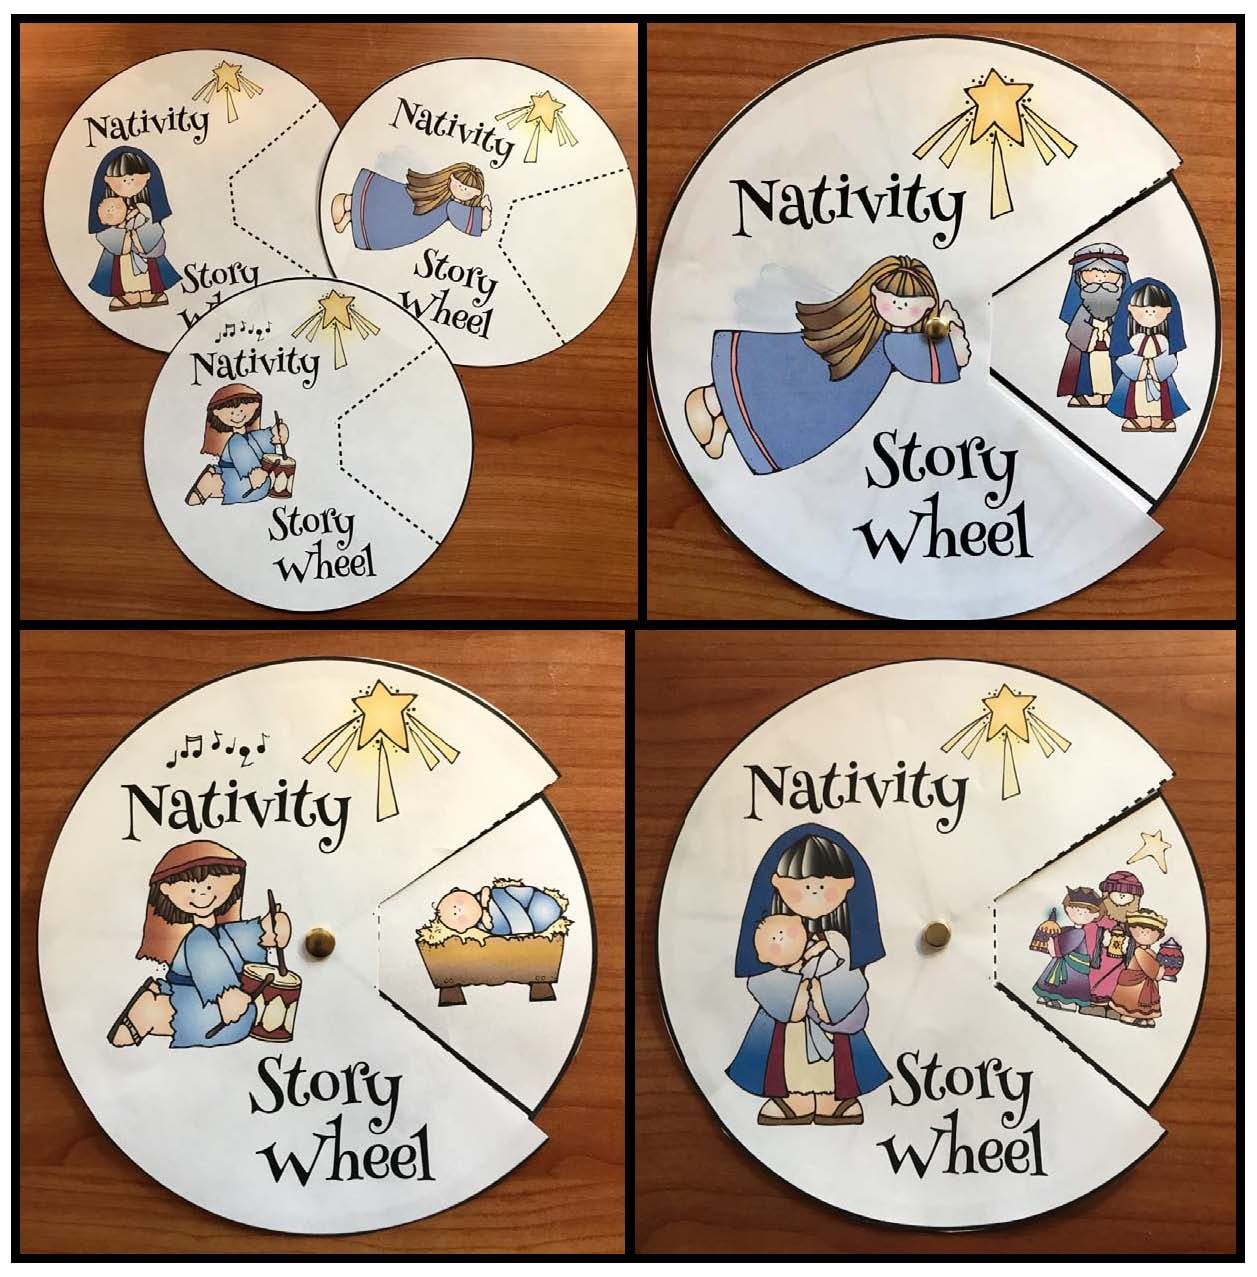 Nativity Craft Sequencing & Retelling the Story